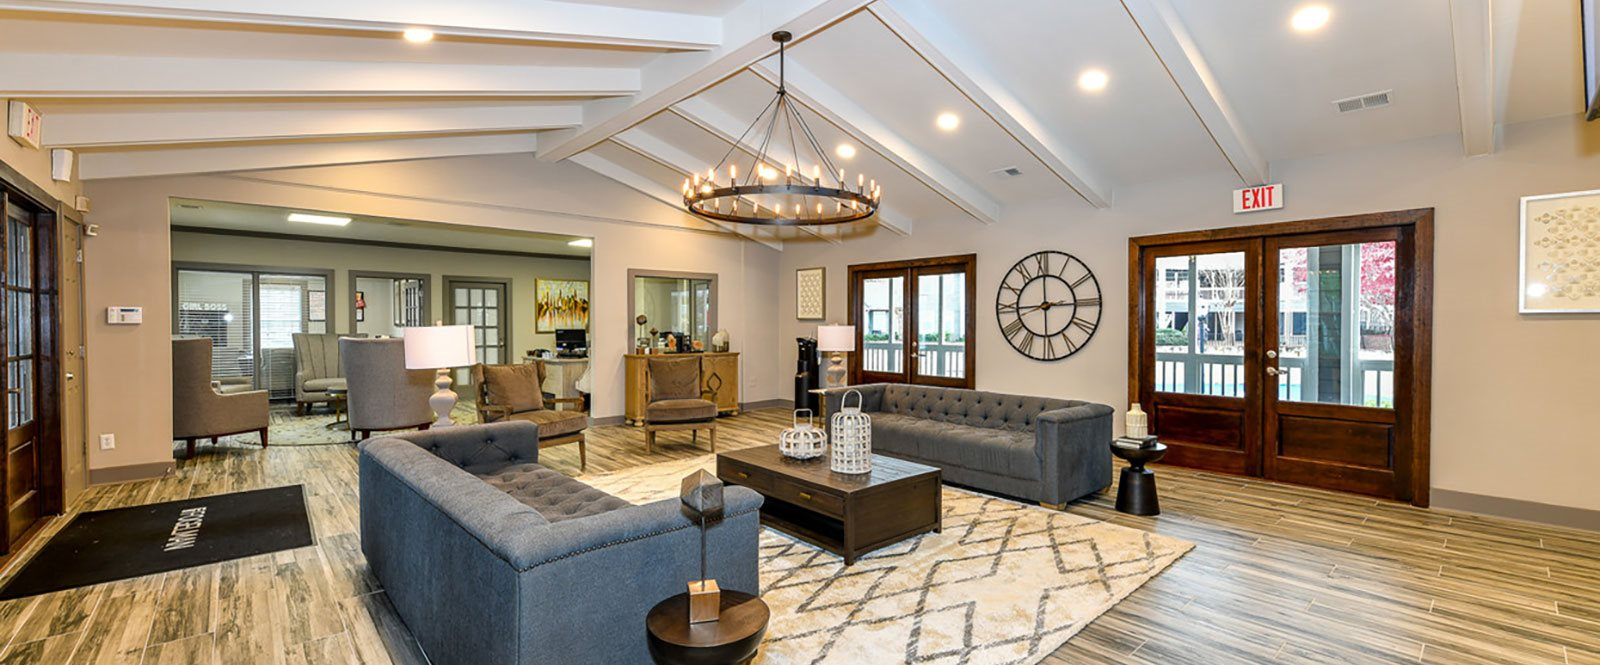 Community Clubhouse at Station Heights, Alpharetta, GA